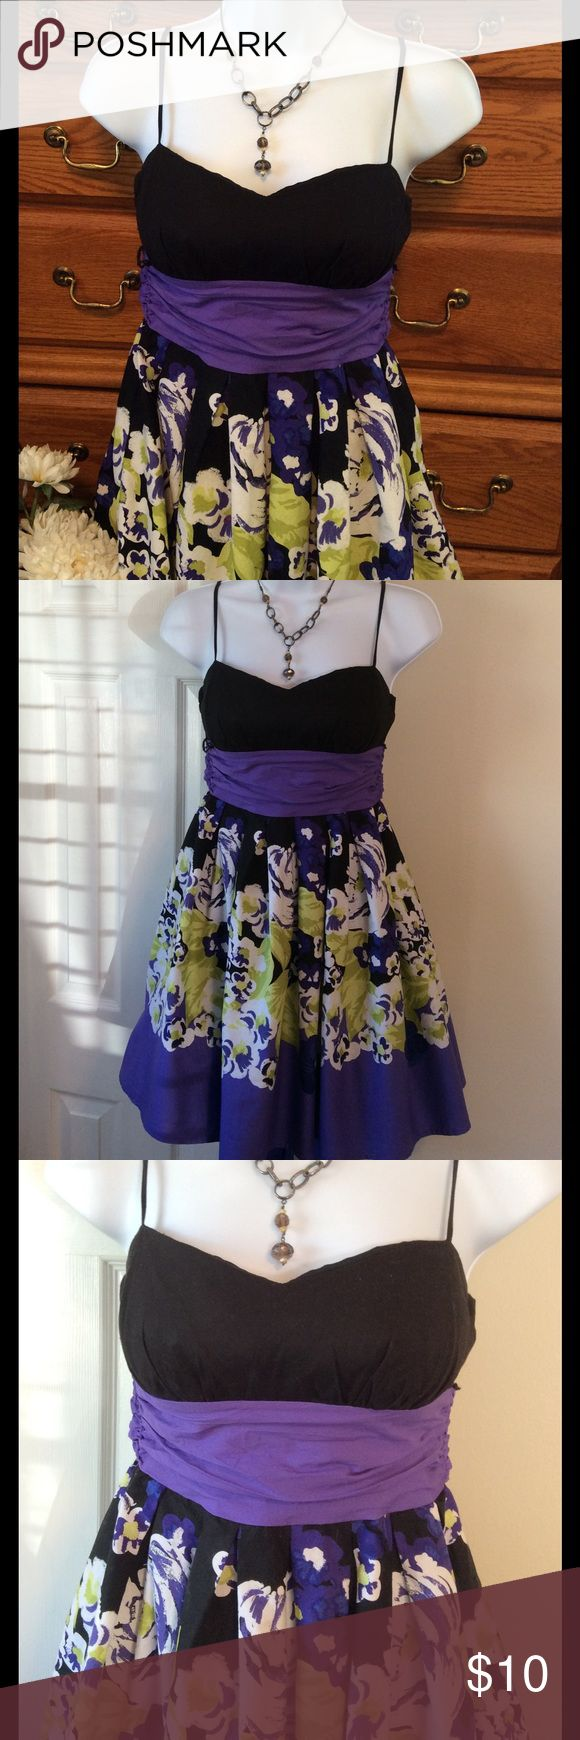 """B. Smart Purple Dress 97% cotton and 3% spandex.  Used but good condition.  Needs iron touch up!  Colors are purple, black , and shades of green.  Approximately 31"""" in length and when measured from armpit to armpit it is 14"""" across.  Has an elastic bust.  Zipper in the back along with a big tie. Tulle, puffy underskirt.  Size says 5/6. Lining 100% acetate.  Machine wash cold. B. Smart Dresses Casual"""